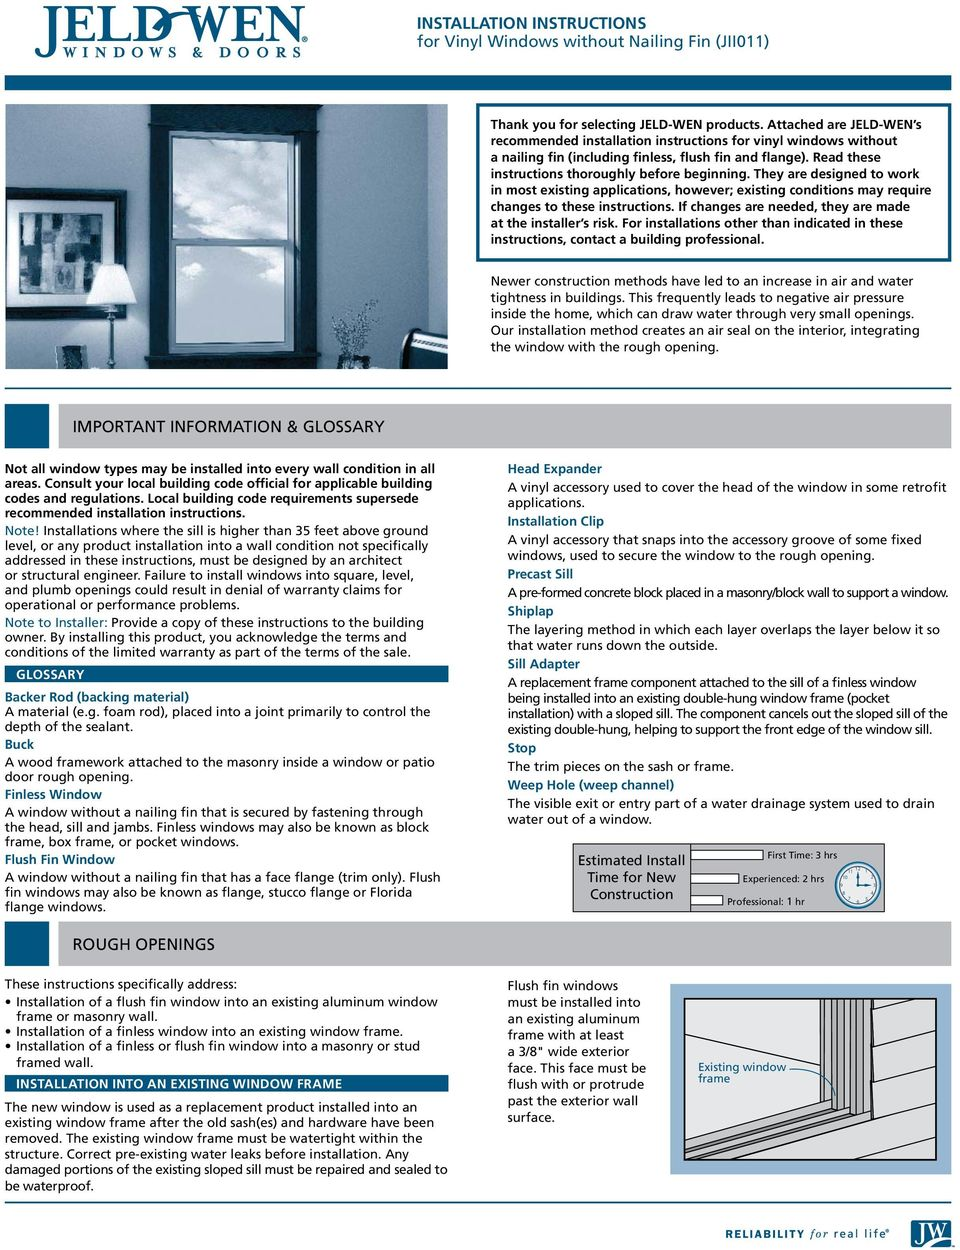 If changes are needed, they are made at the installer s risk. For installations other than indicated in these instructions, contact a building professional.